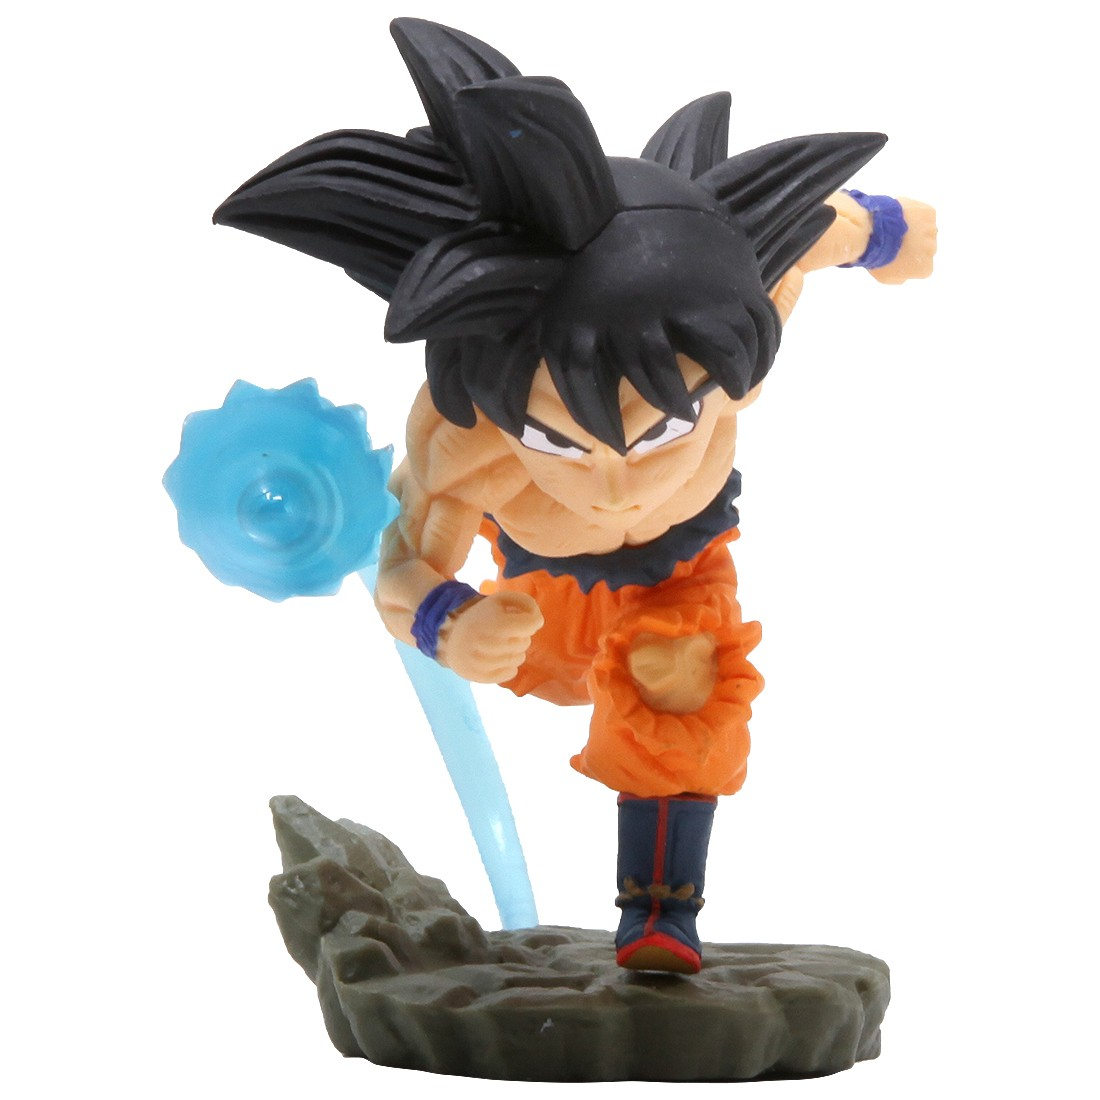 Banpresto Dragon Ball Super World Collectable Diorama Vol. 3 - 09 Son Goku Figure (orange)